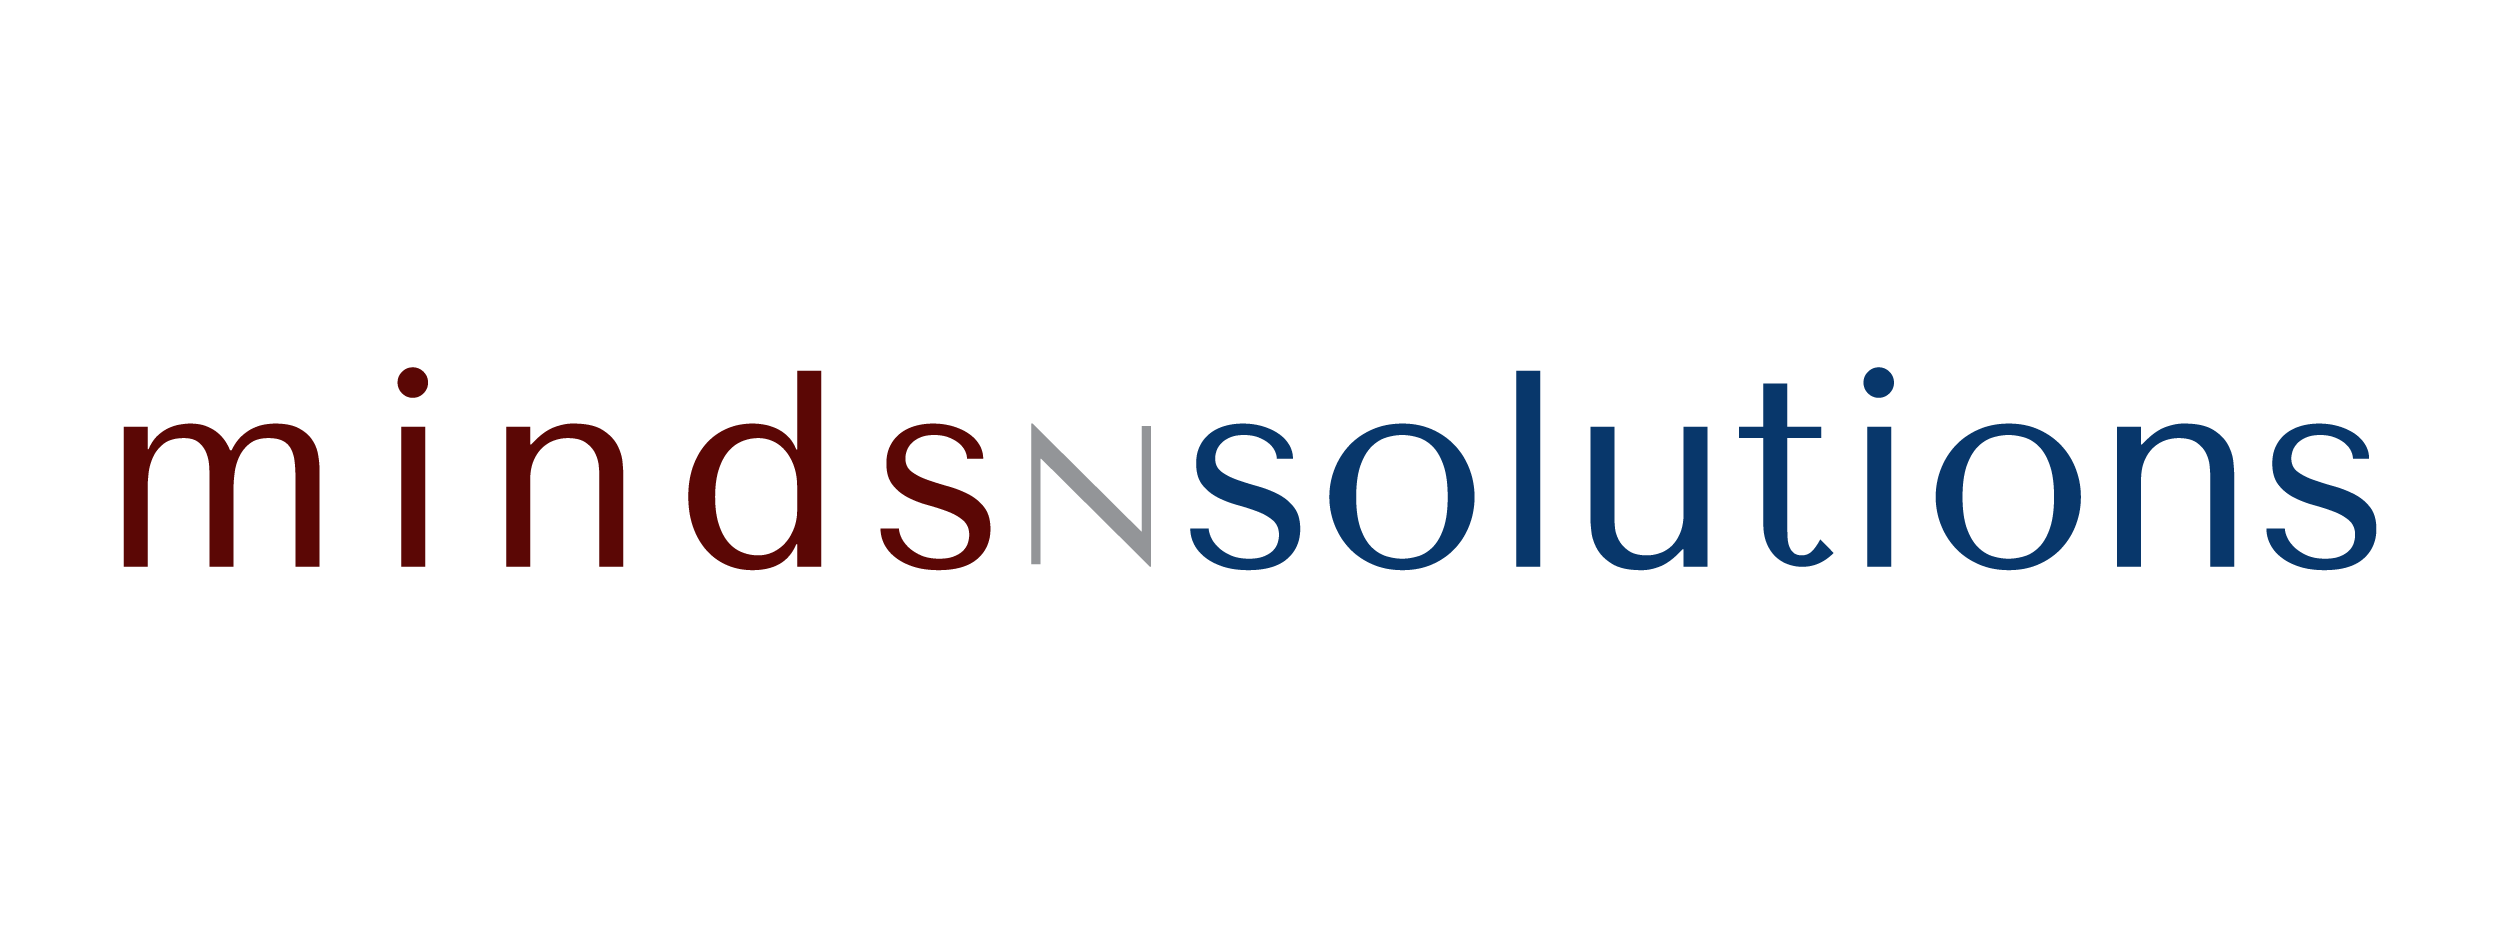 Mindsnsolutions